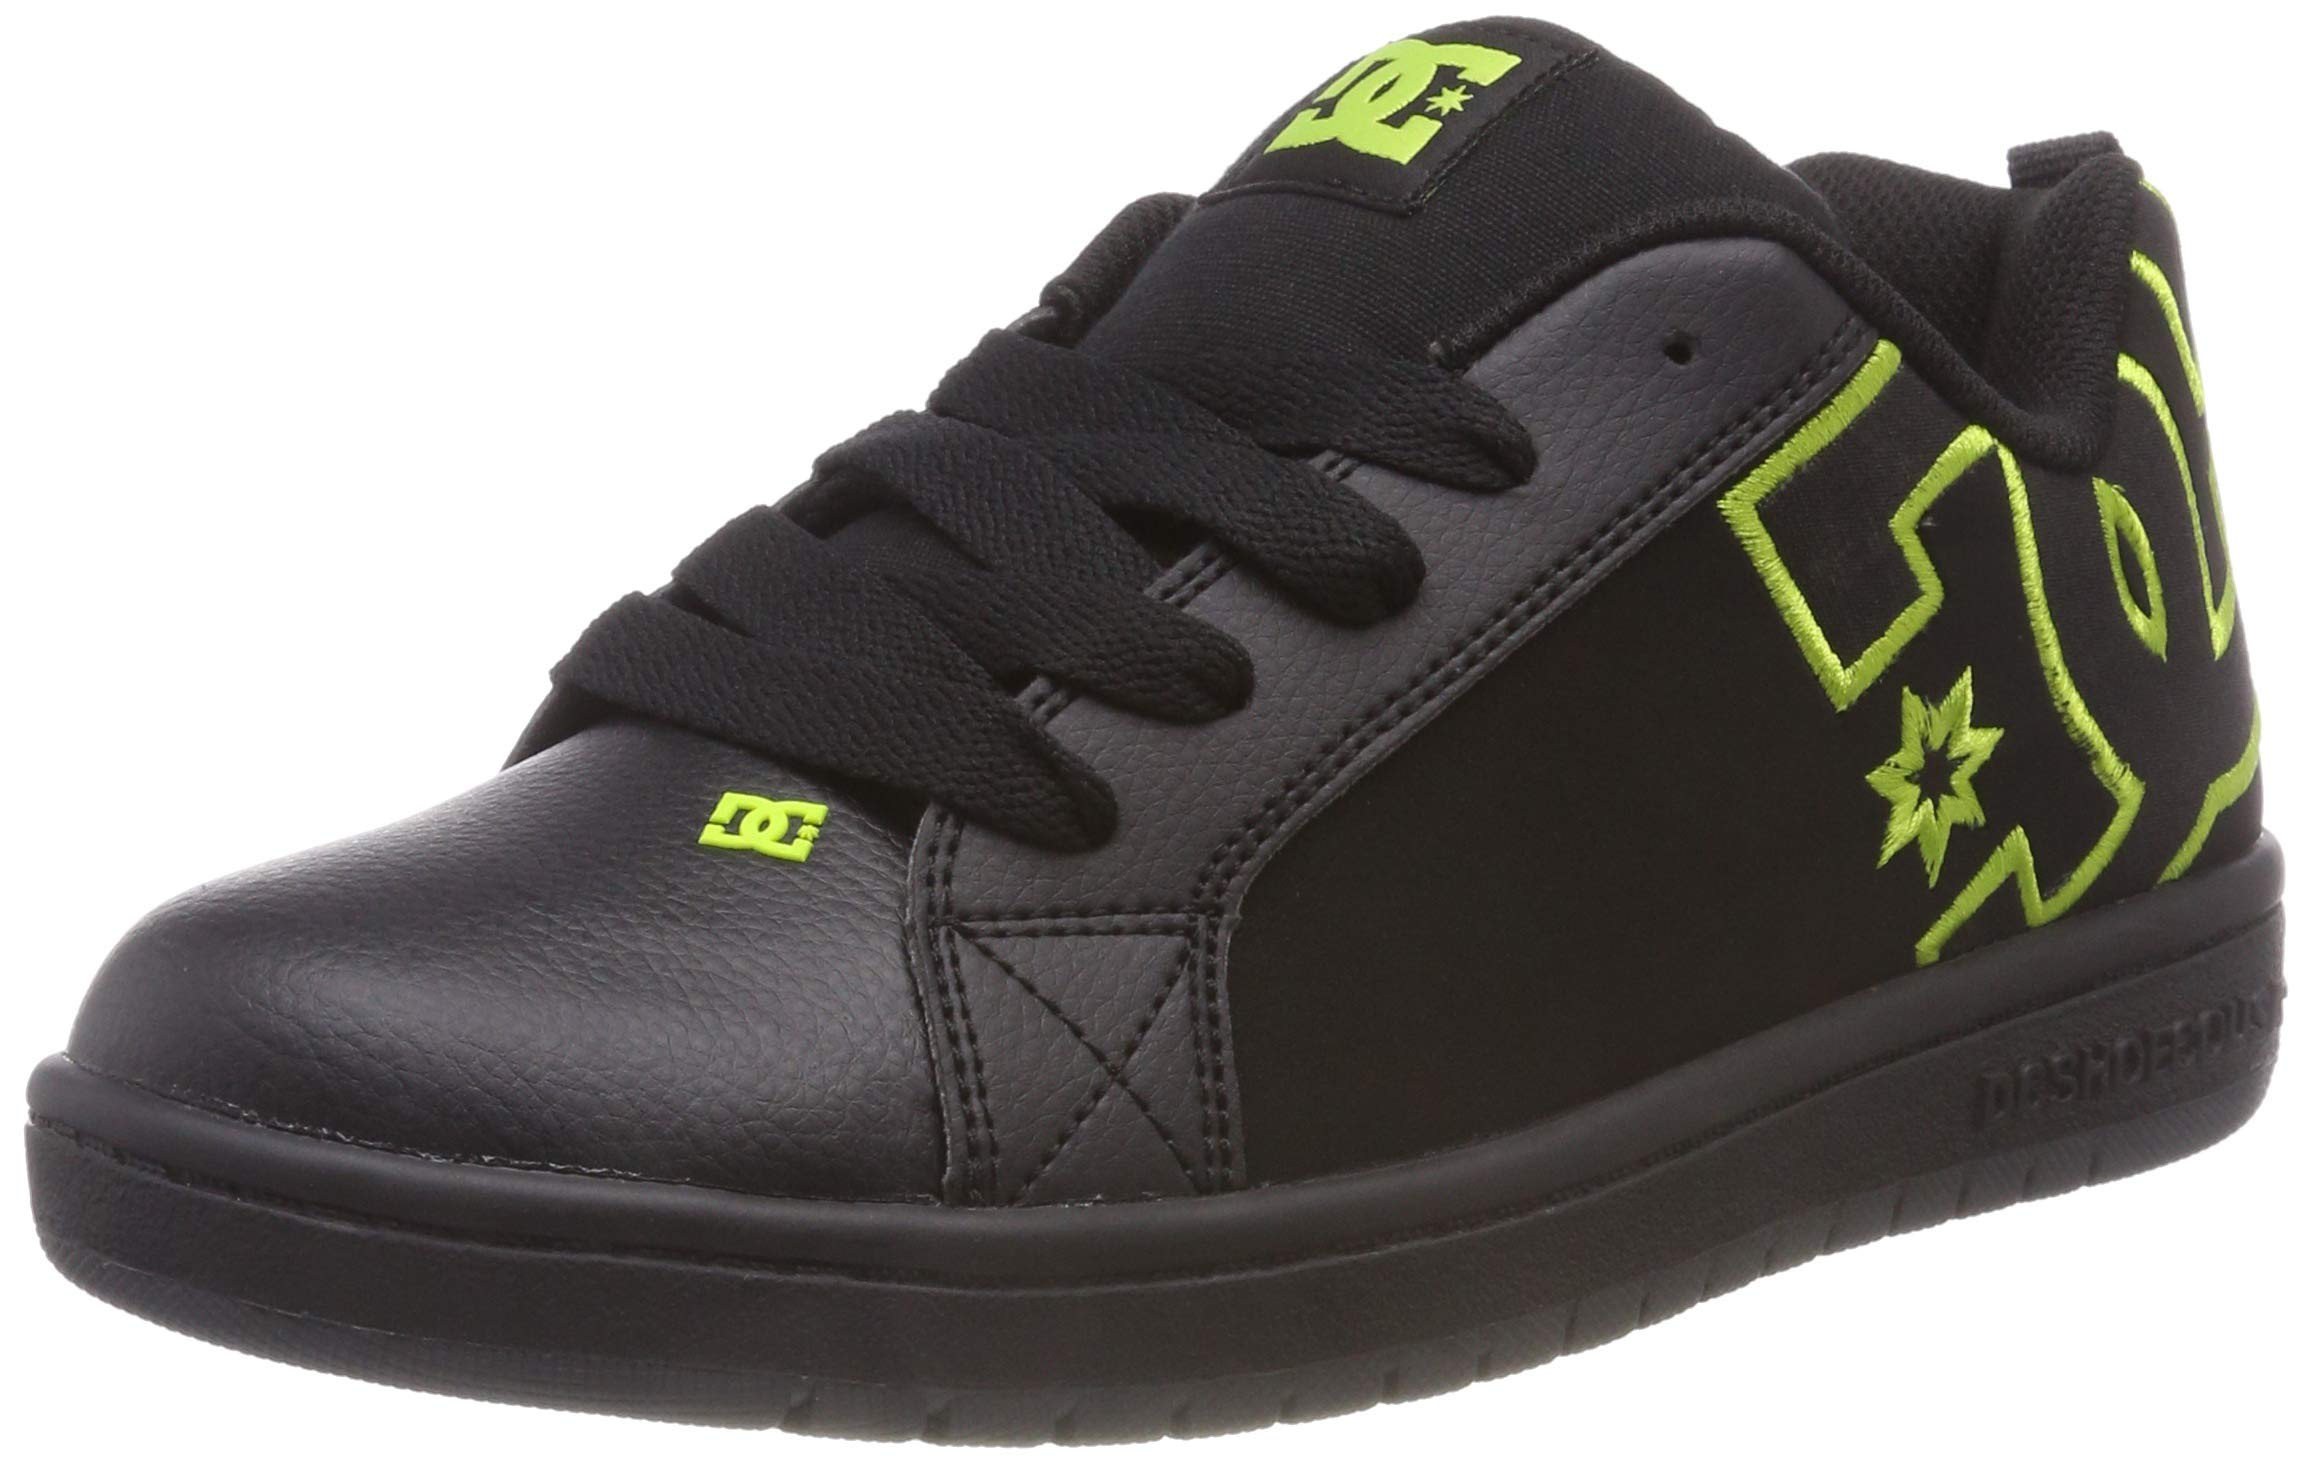 DC CT Graffik SE Kids Black/Black/Soft Lime Kids 2uk / Black/Black/Soft Lime